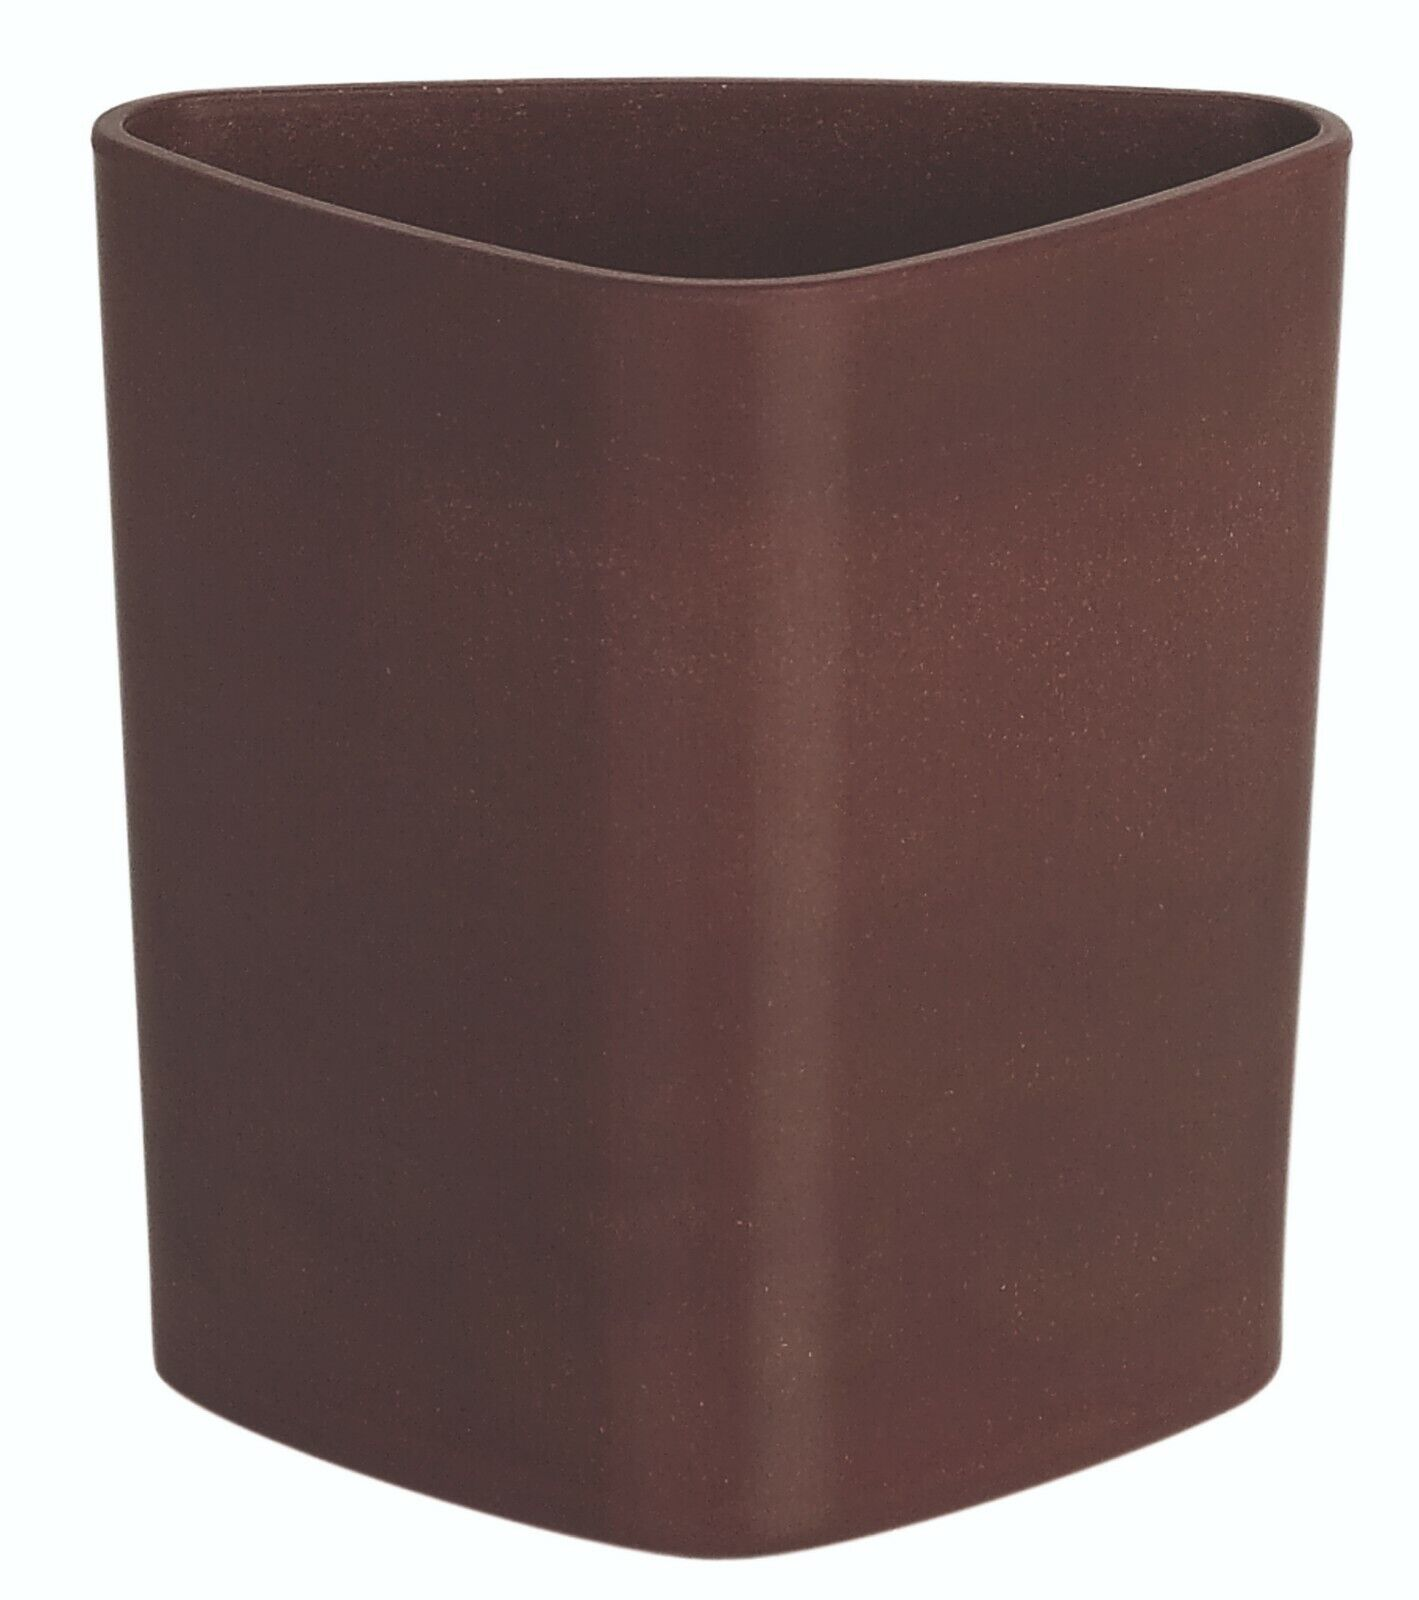 Spirella Trix Eco Mouth Washing Cup Toothbrush Cup Brown Swiss